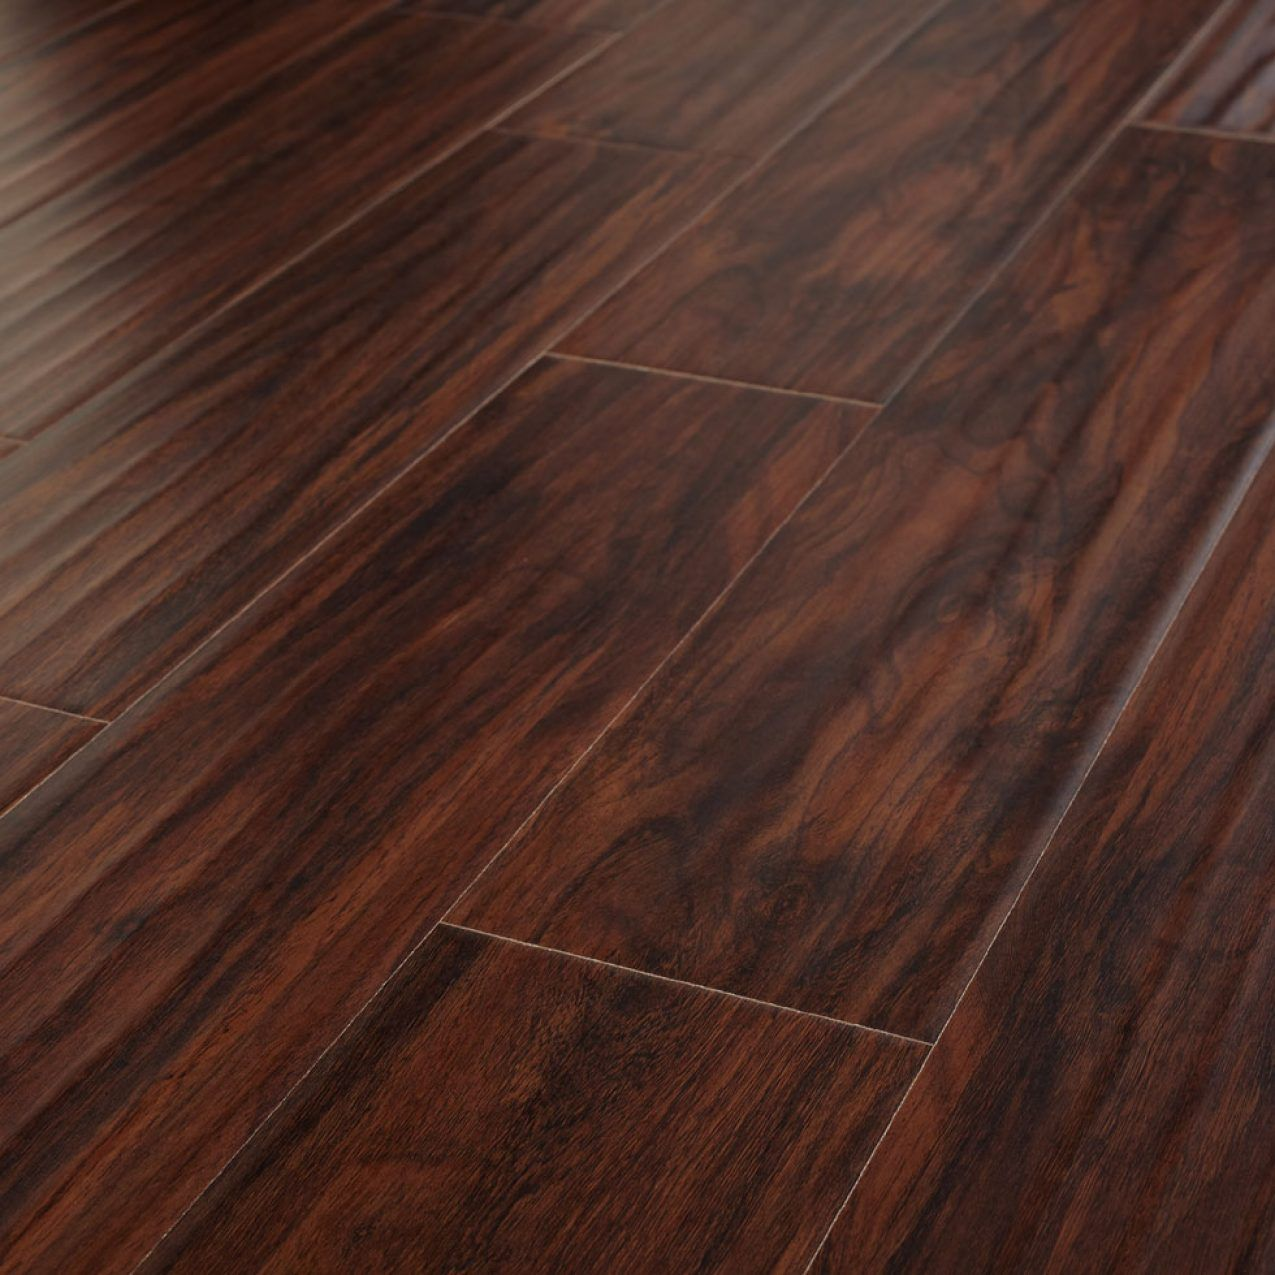 Fake Flooring hank hand scraped hickory flooring from evoke. this is the nicest